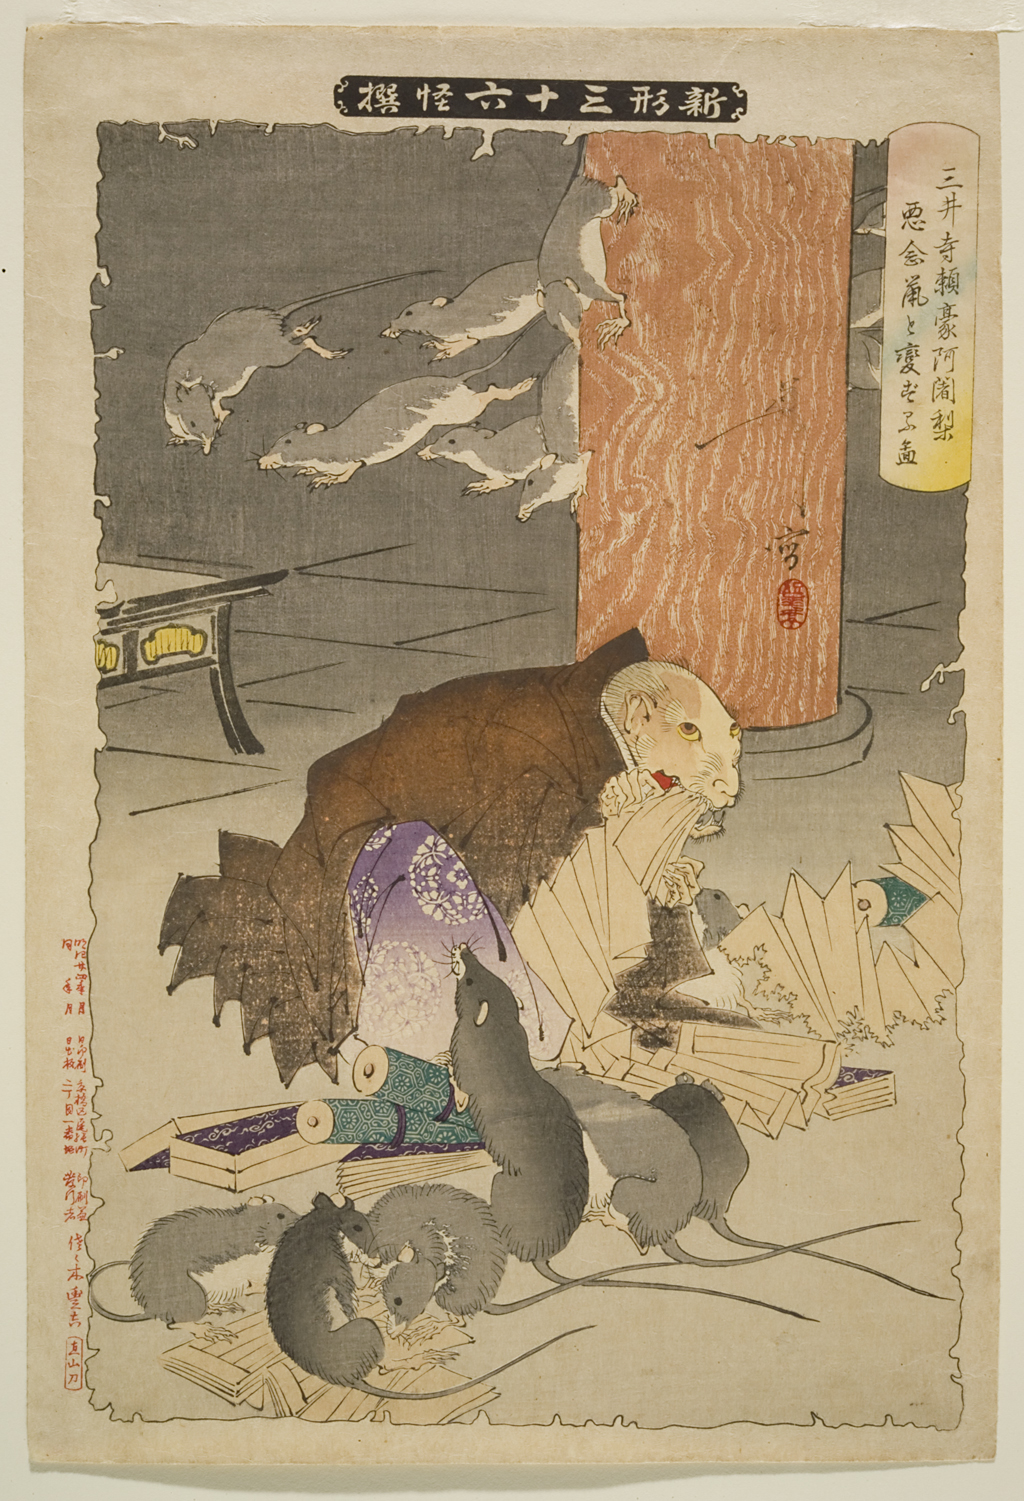 Priest Raigō of Mii Temple Transformed into a Rat by Tsukioka Yoshitoshi